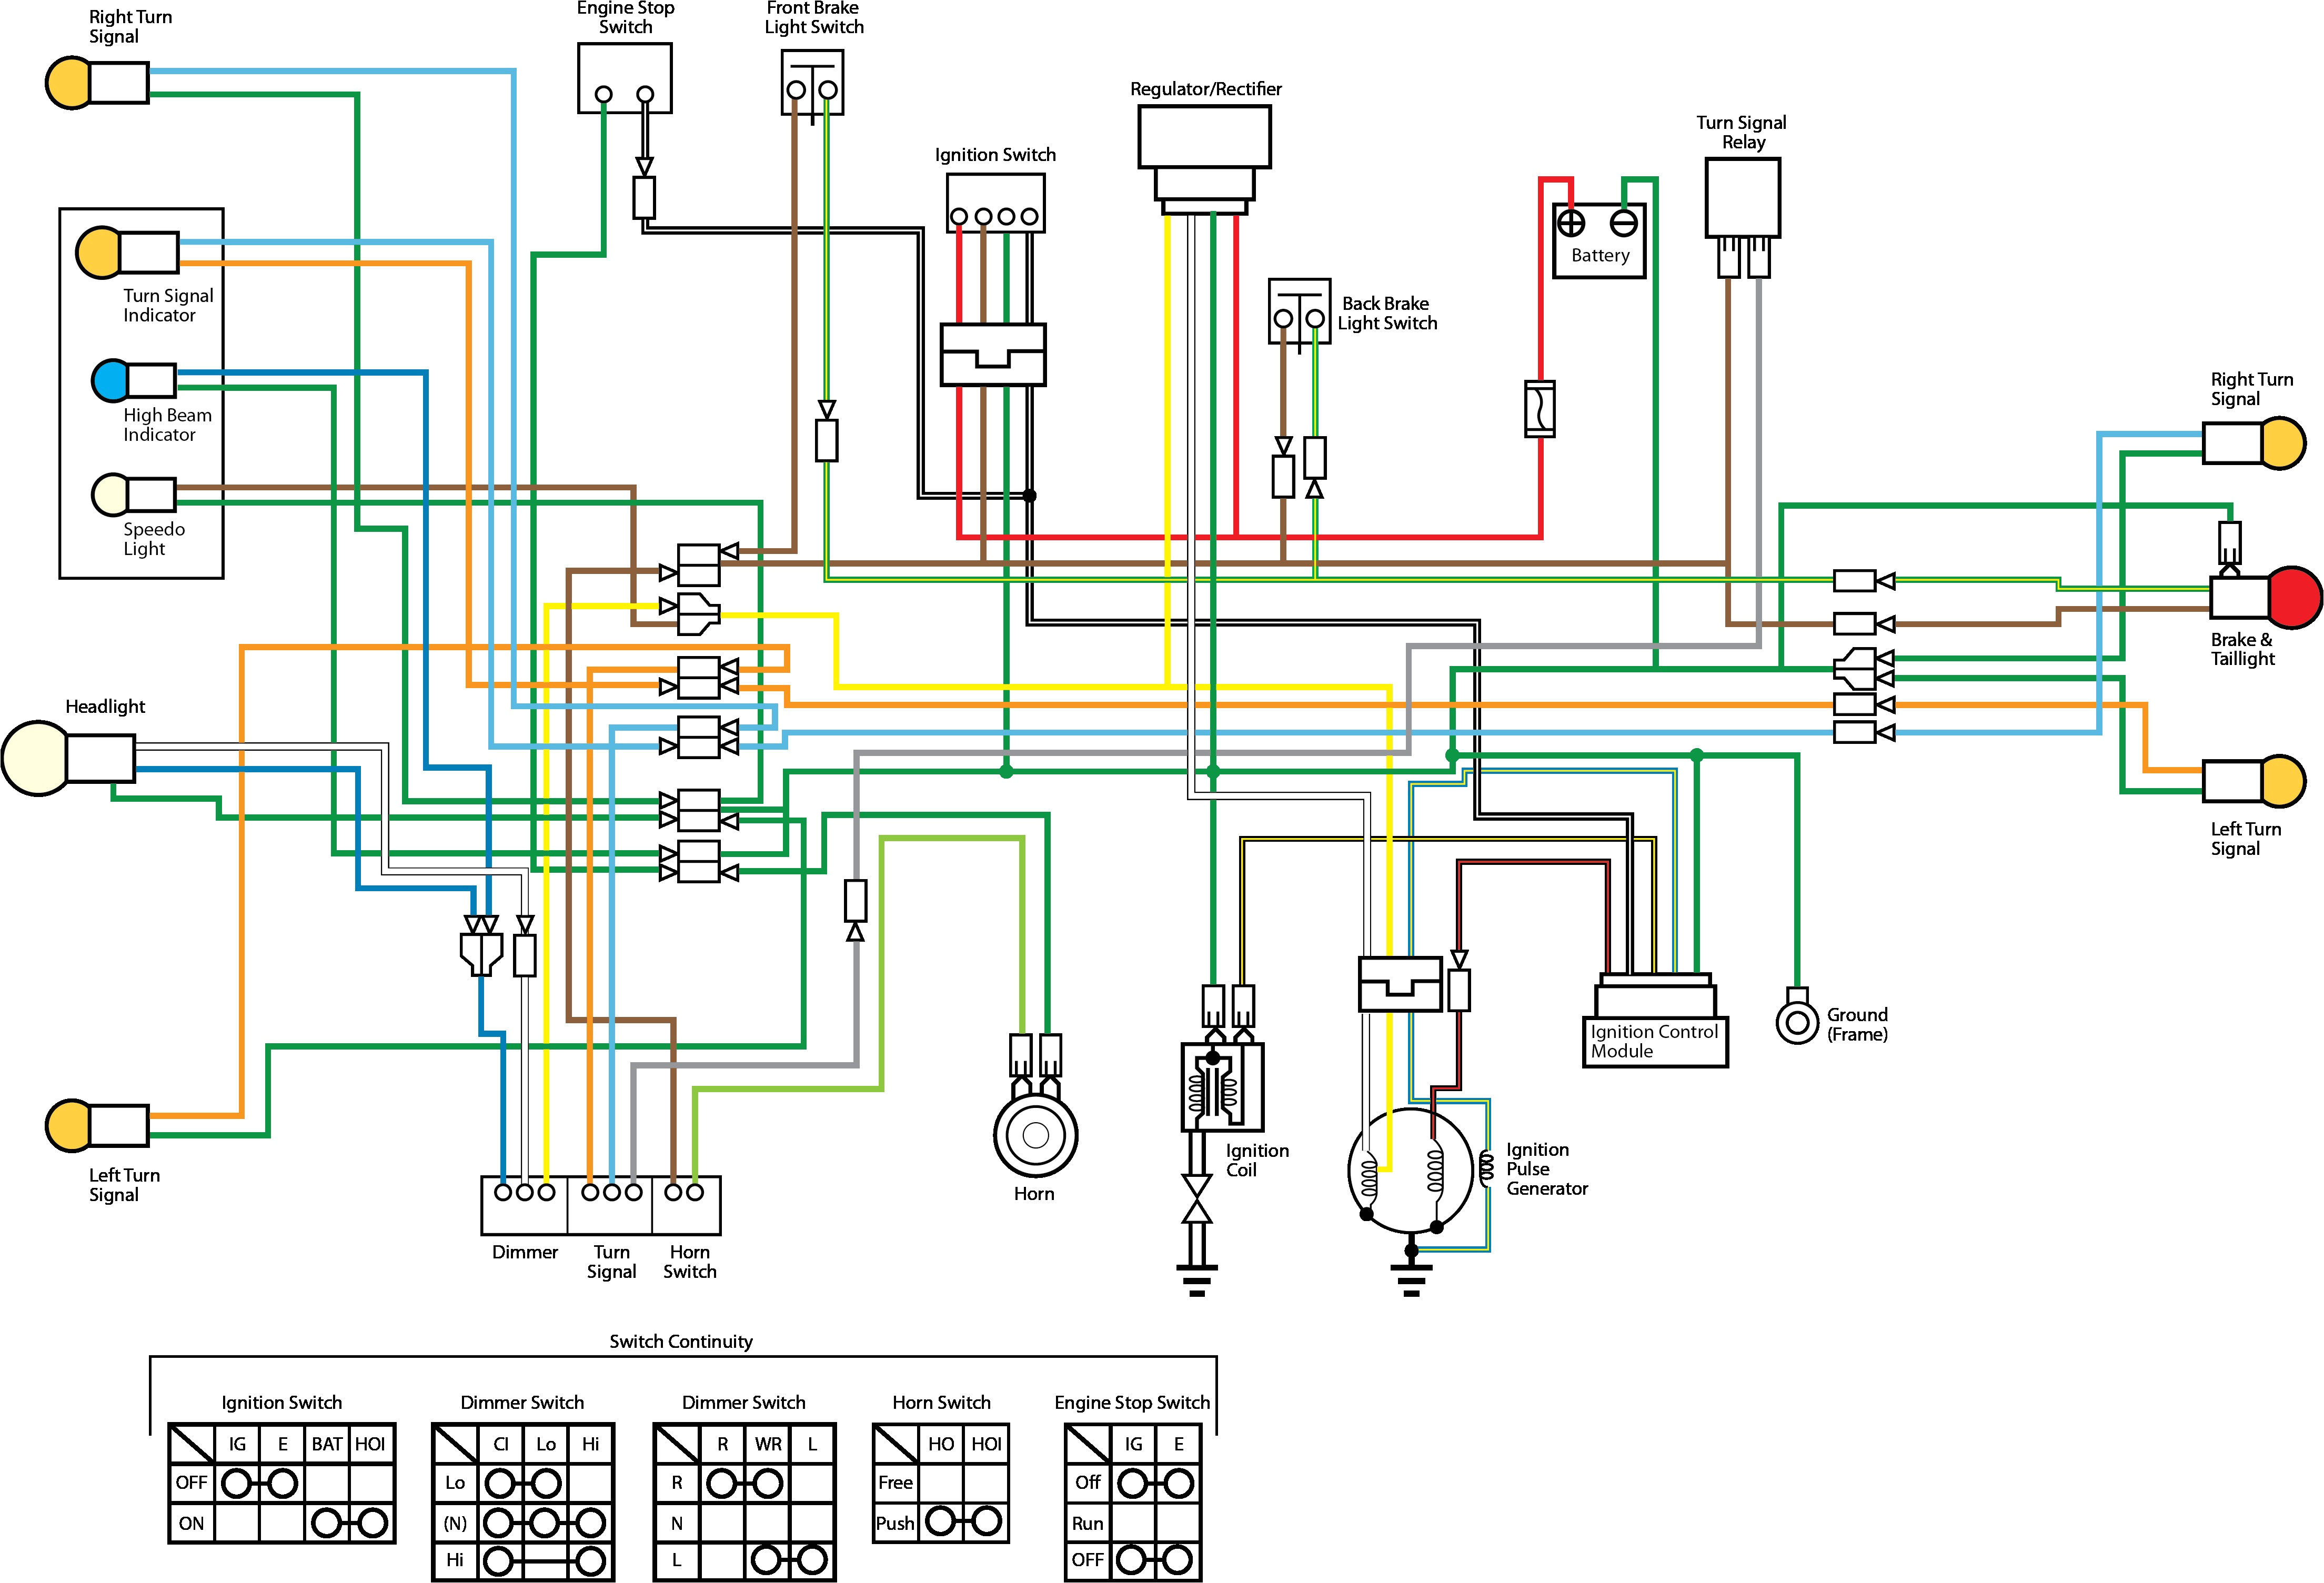 h22a4 wiring harness diagram best of honda nc50 wiring harness example electrical wiring diagram